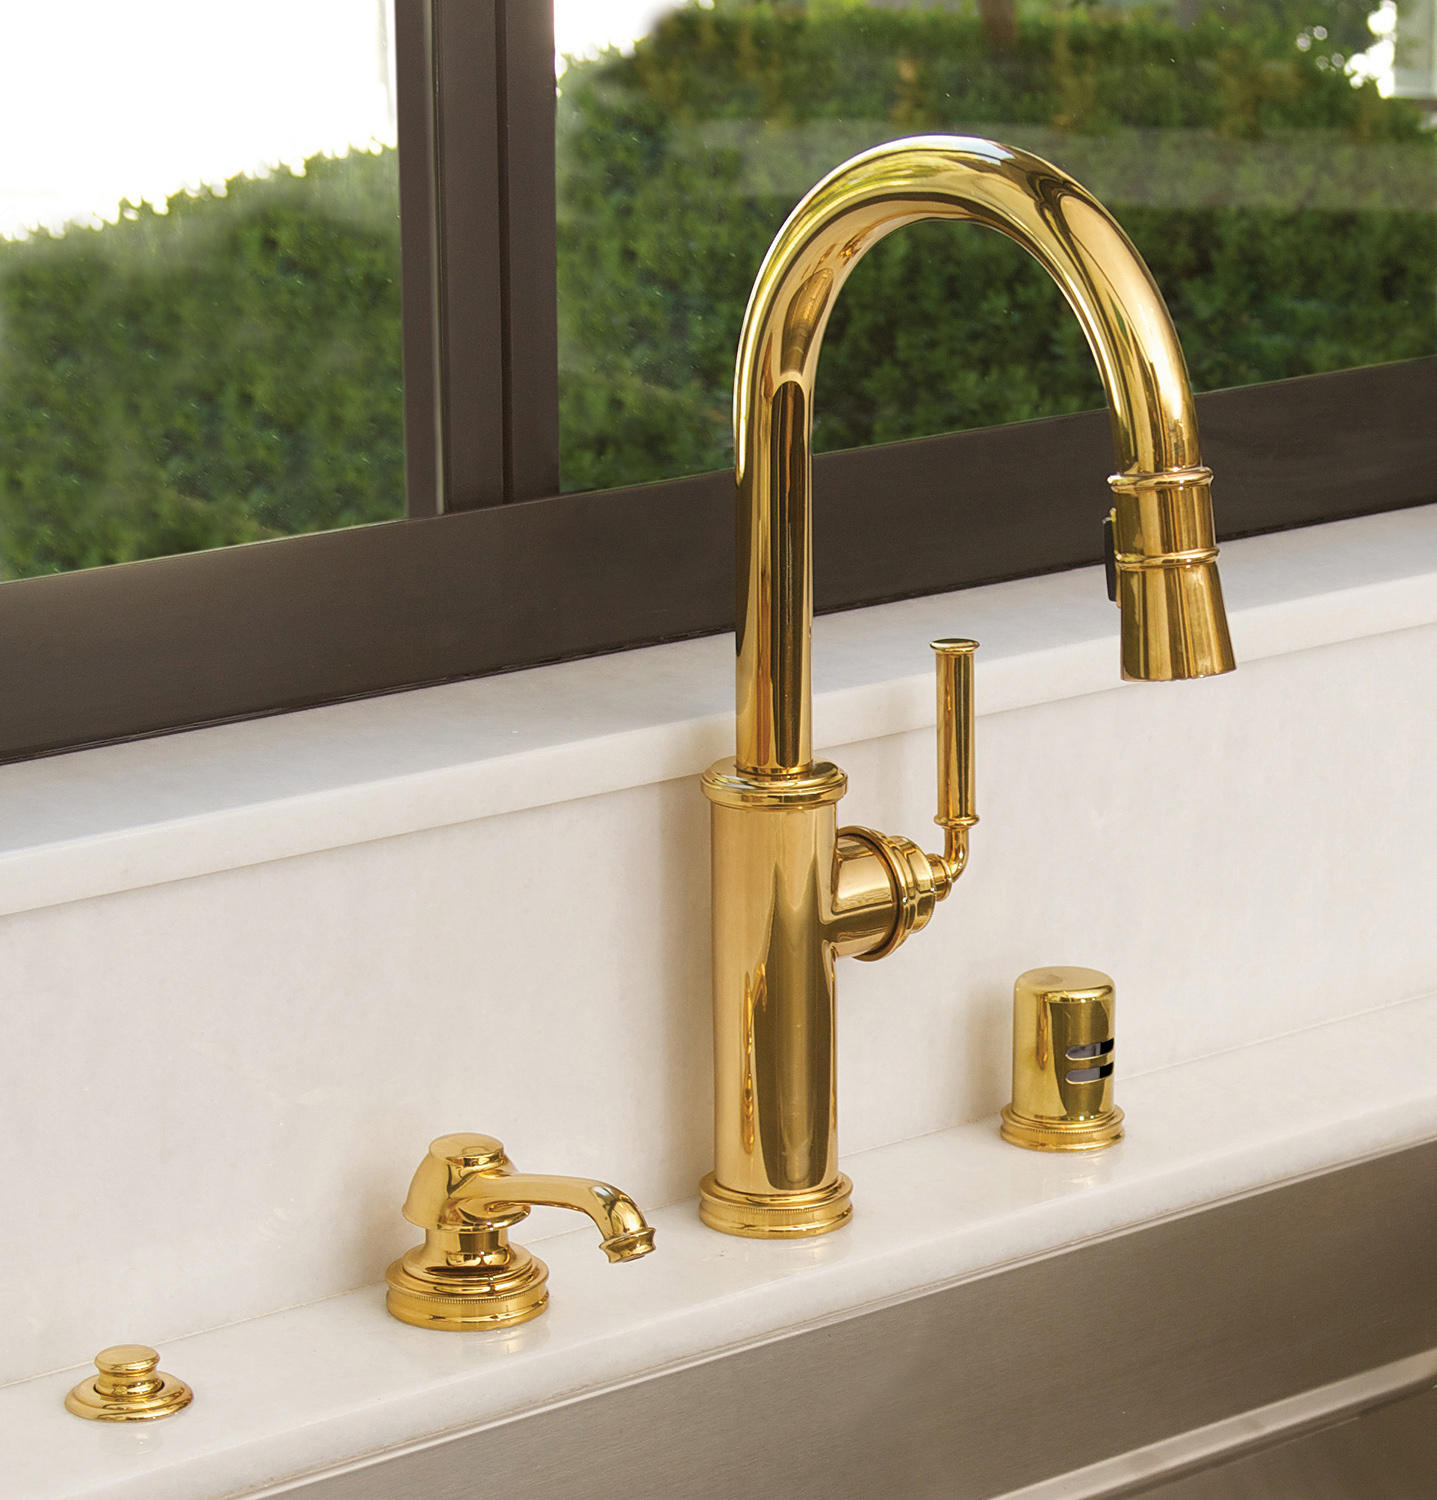 Newport Brass Kitchen Faucet: Newport Brass Kitchen Sink Faucets